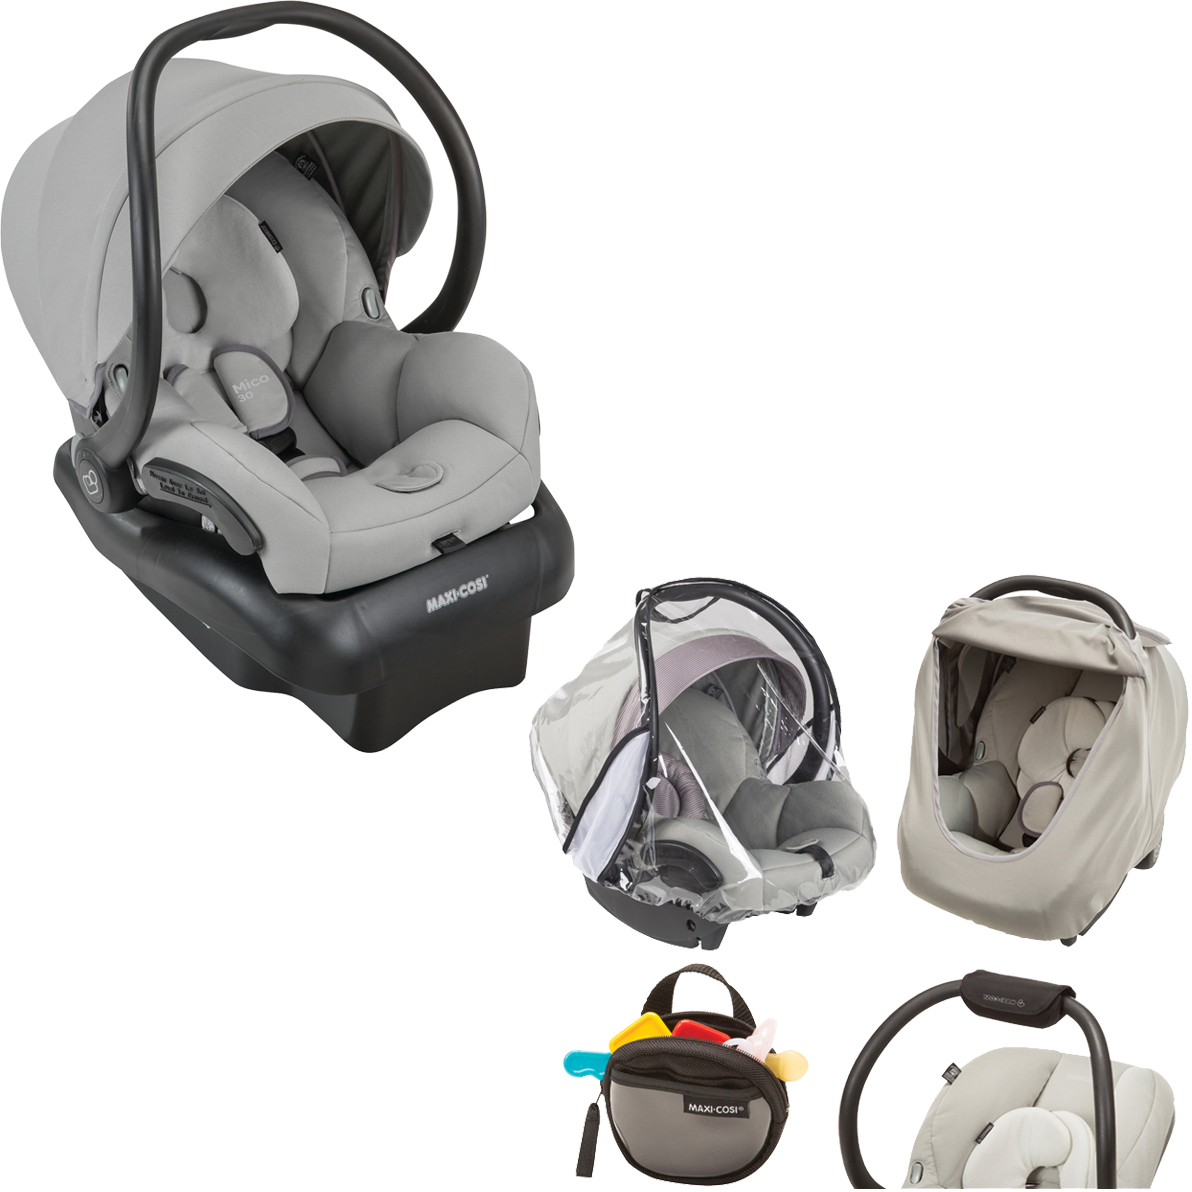 Maxi Cosi Mico 30 Infant Car Seat, Choose Your Color & Accessory Pack BUNDLE